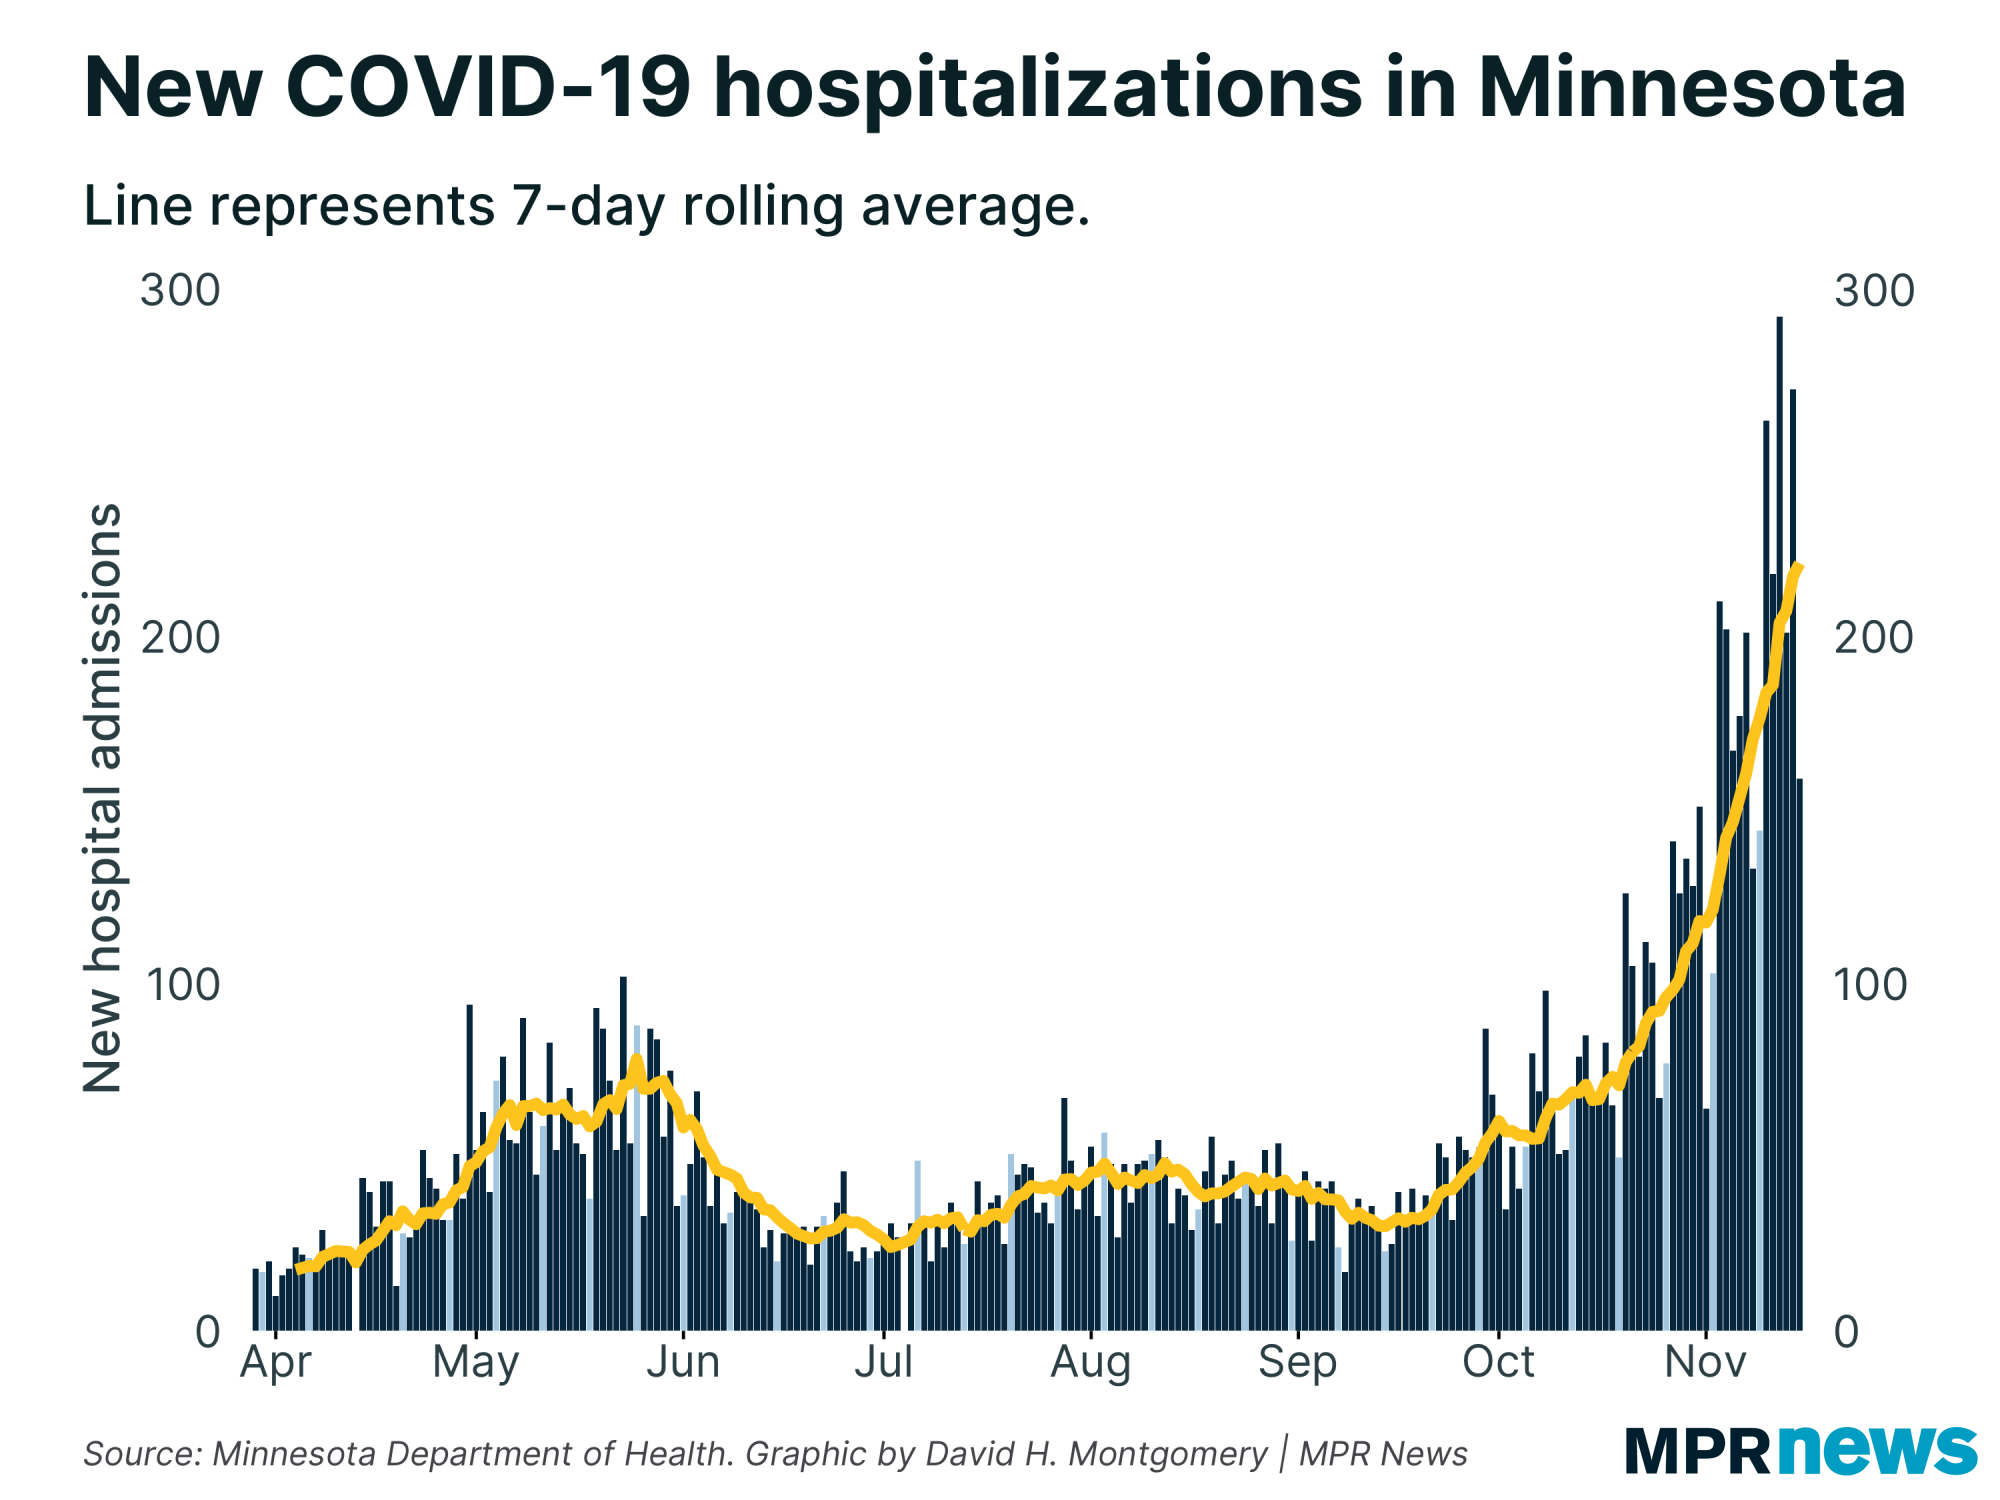 New COVID-19 hospitalizations in Minnesota